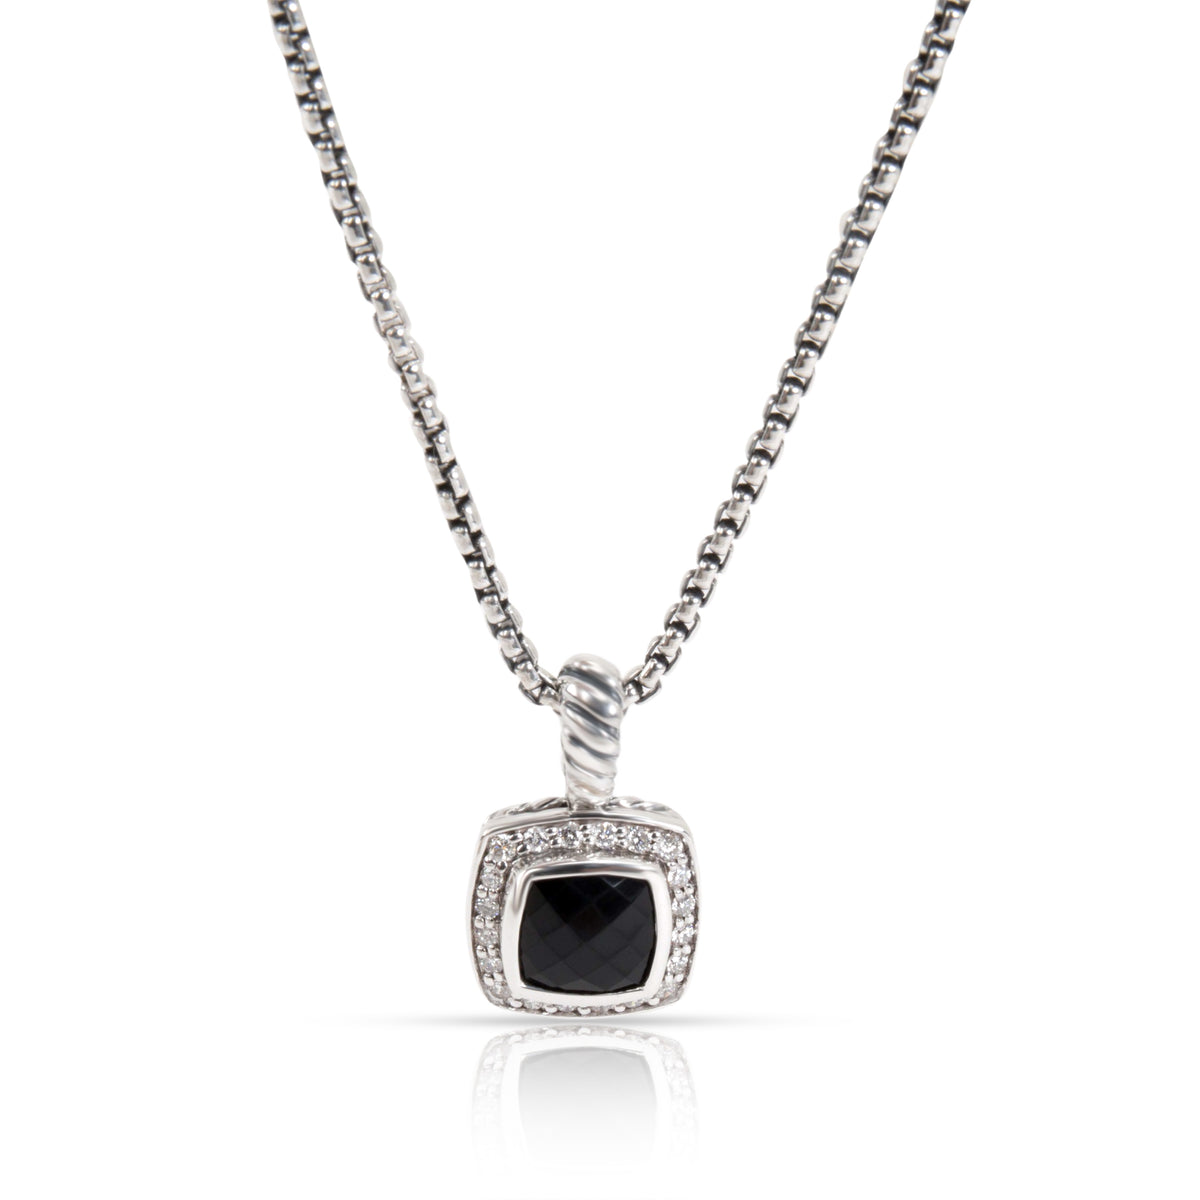 David Yurman Petite Albion Onyx Diamond Necklace in  Sterling Silver 0.18 CTW